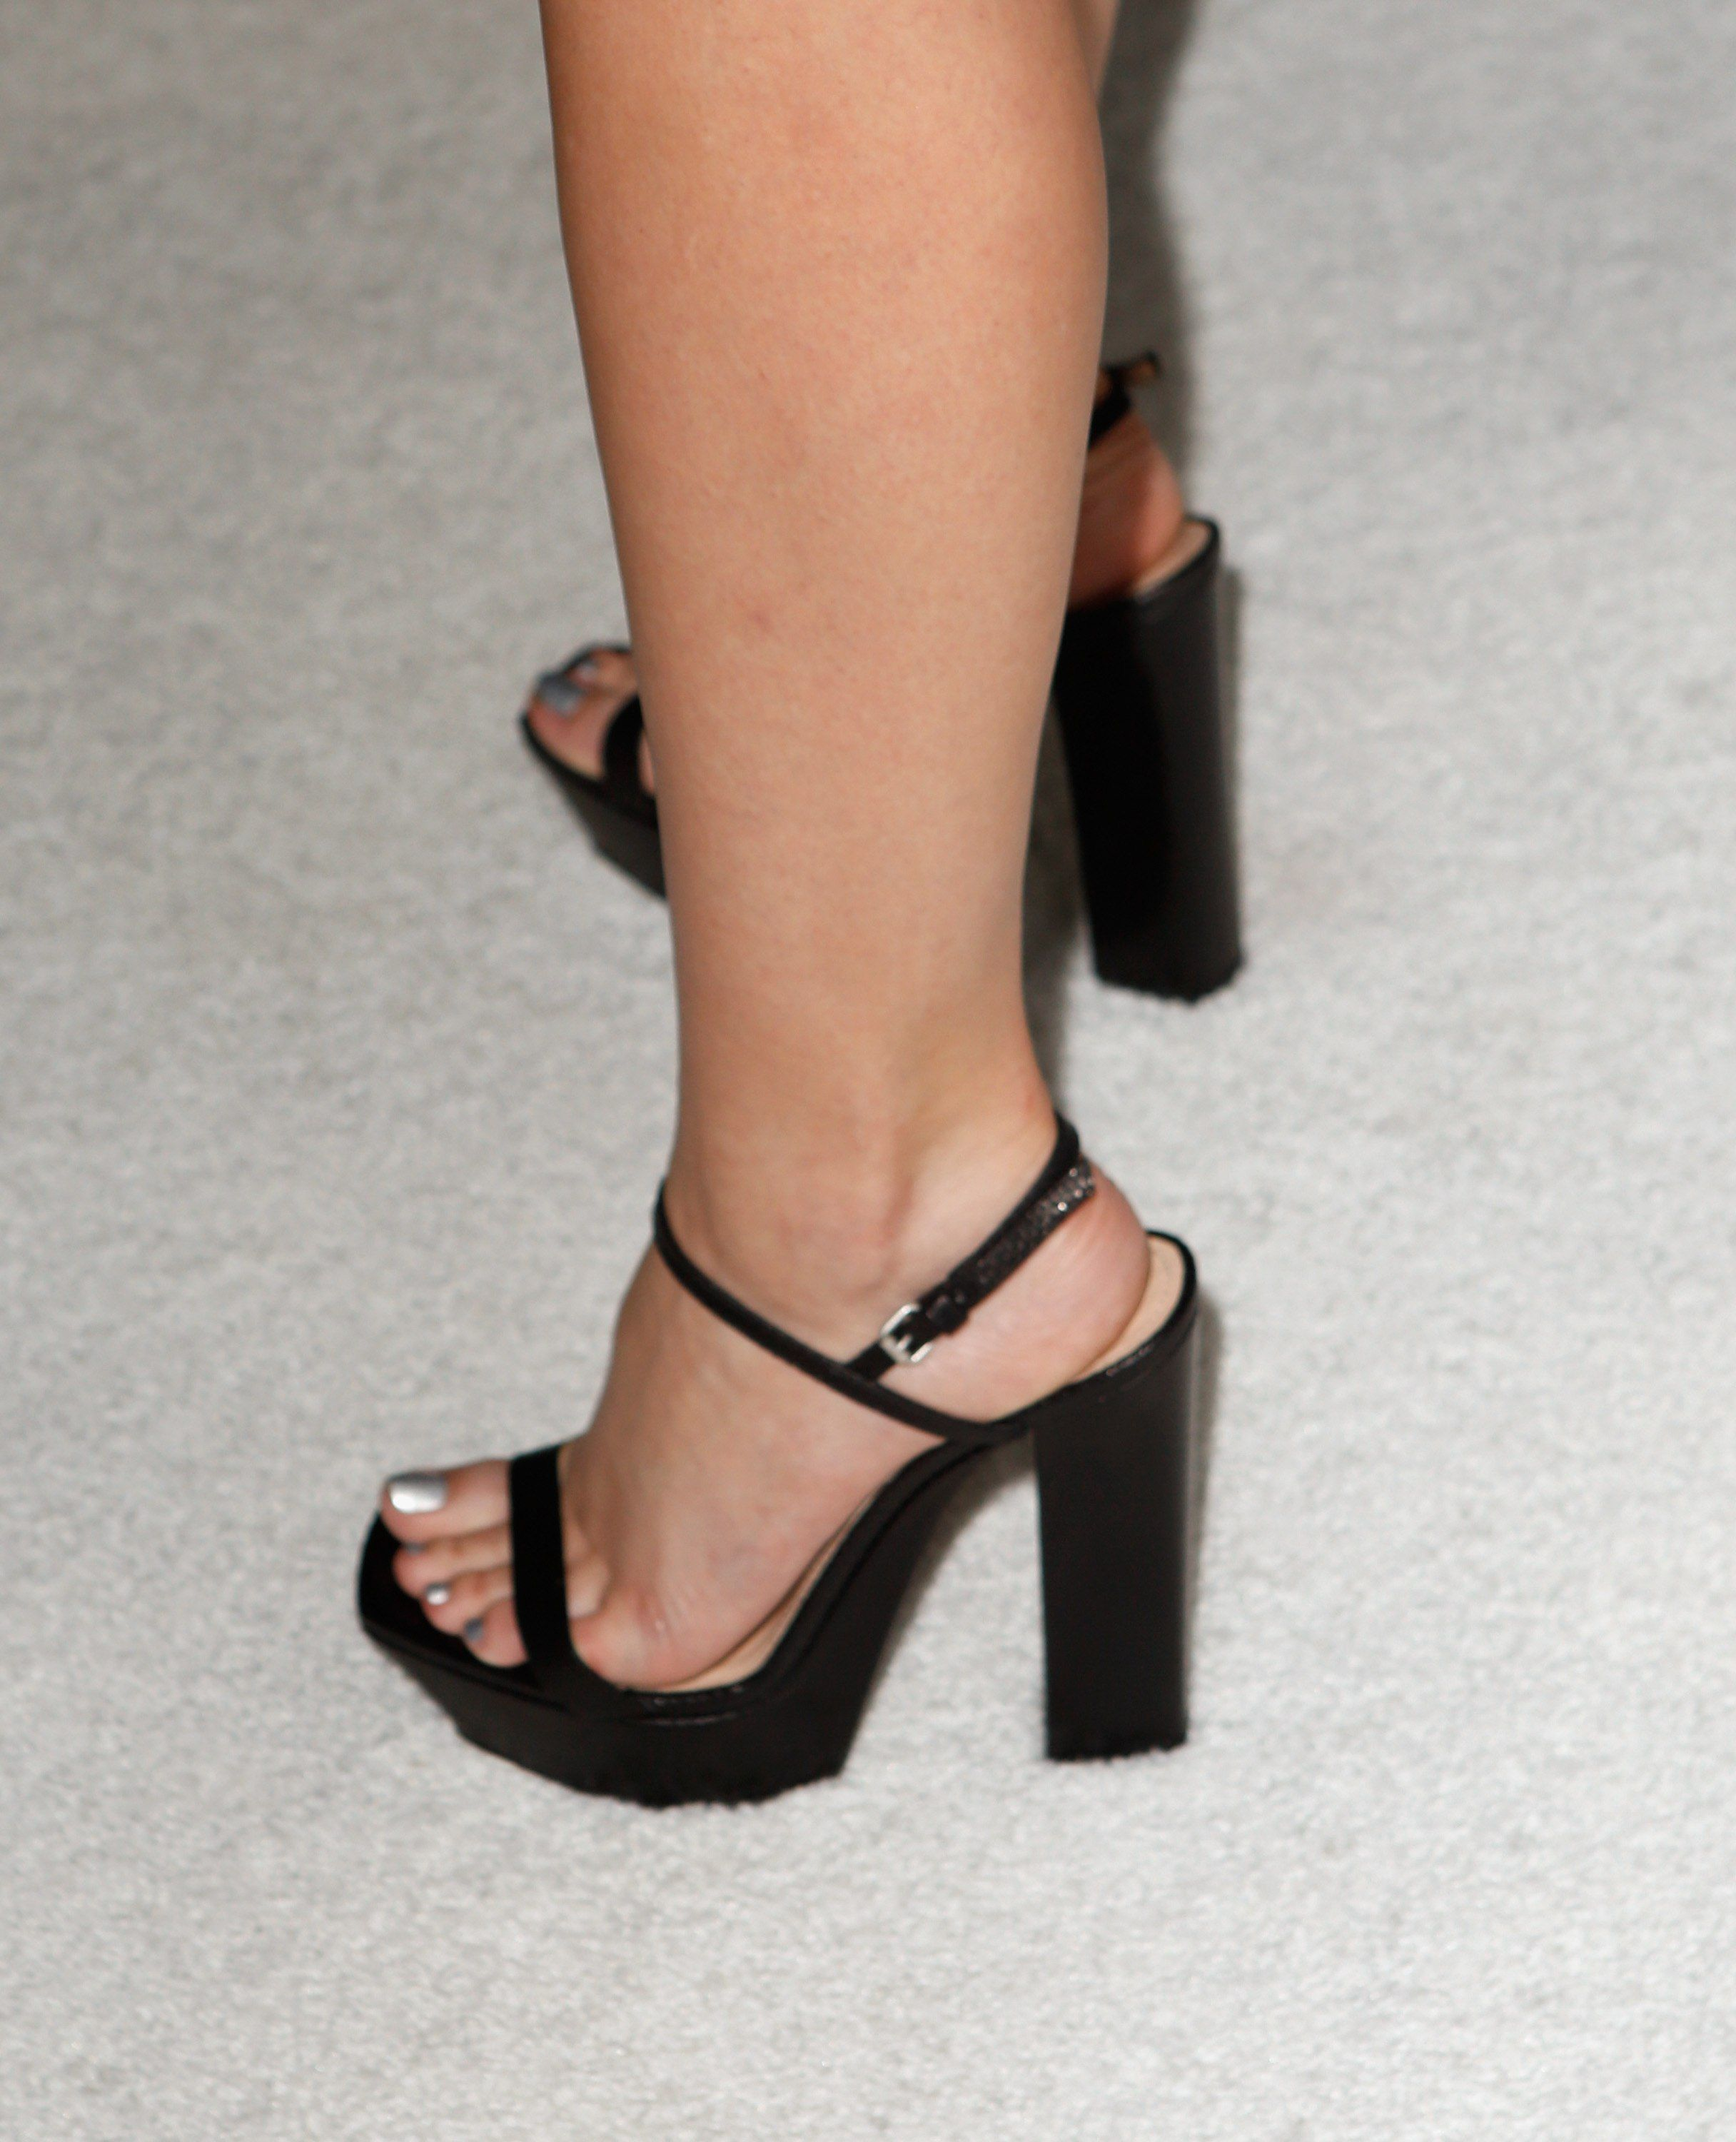 4b435456c47 emma watson s heels at the women in hollywood event.  shoeporn ...